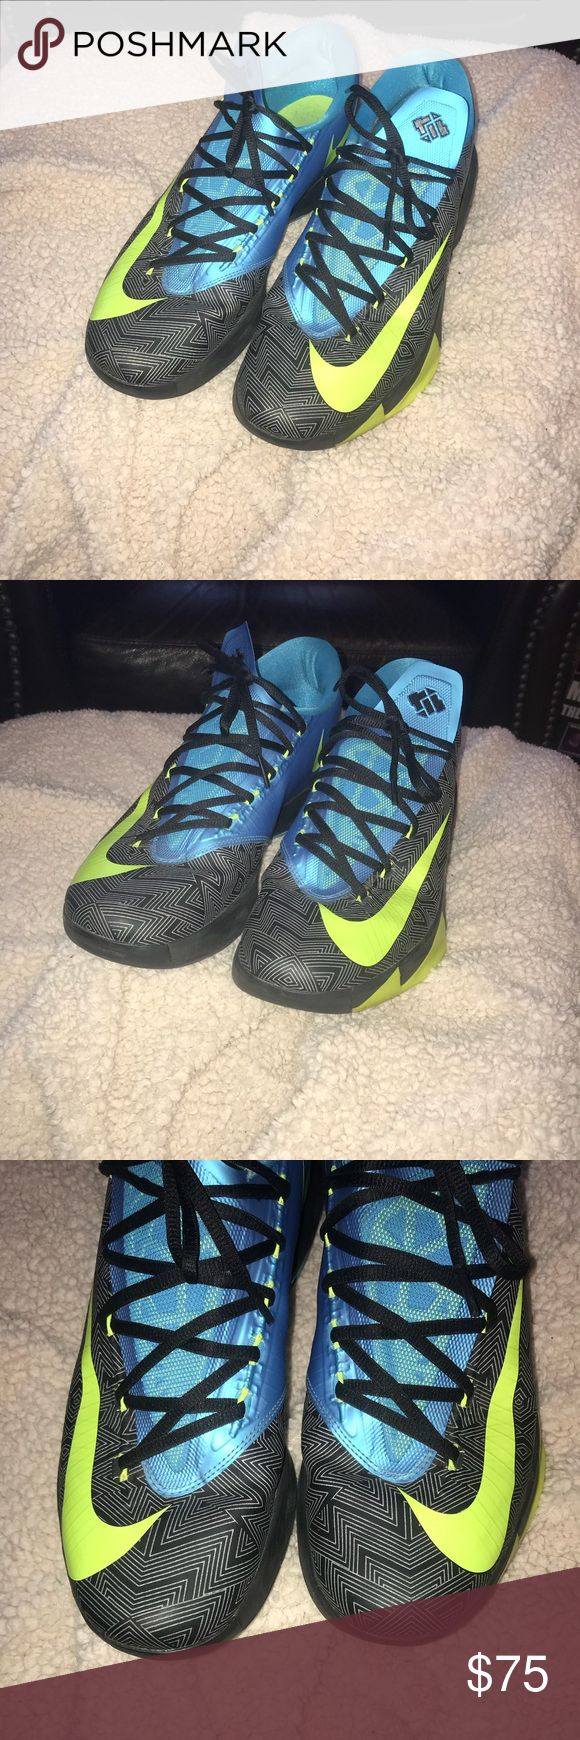 Nike KD VI Away II Nike KD VI Away II, used but in great condition. Only worn a few times. Size 12. Nike Shoes Athletic Shoes